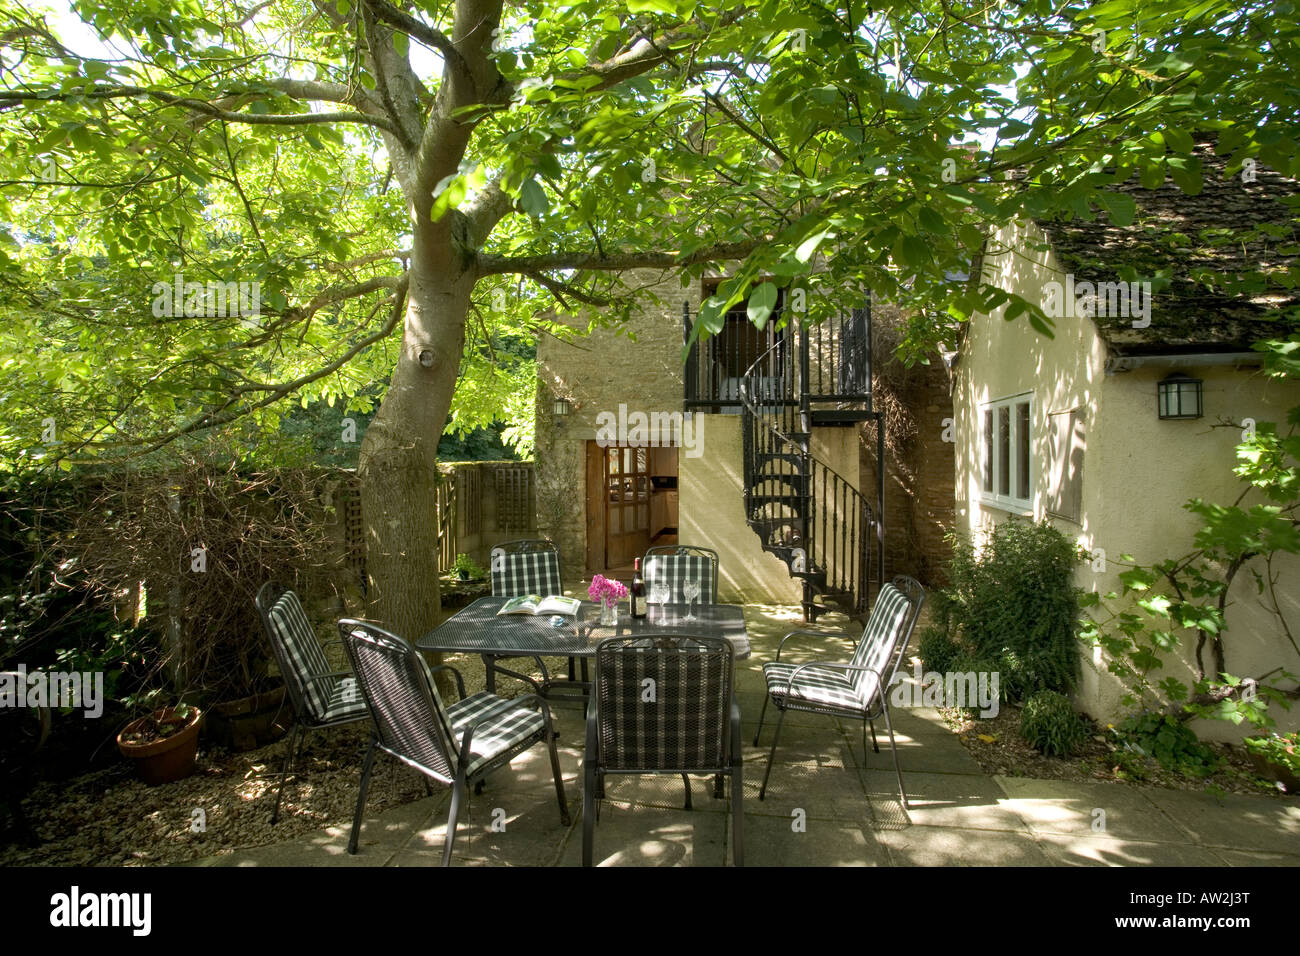 Summer Table And Chairs Part - 40: Dappled Shade On A Summer Garden Table And Chairs